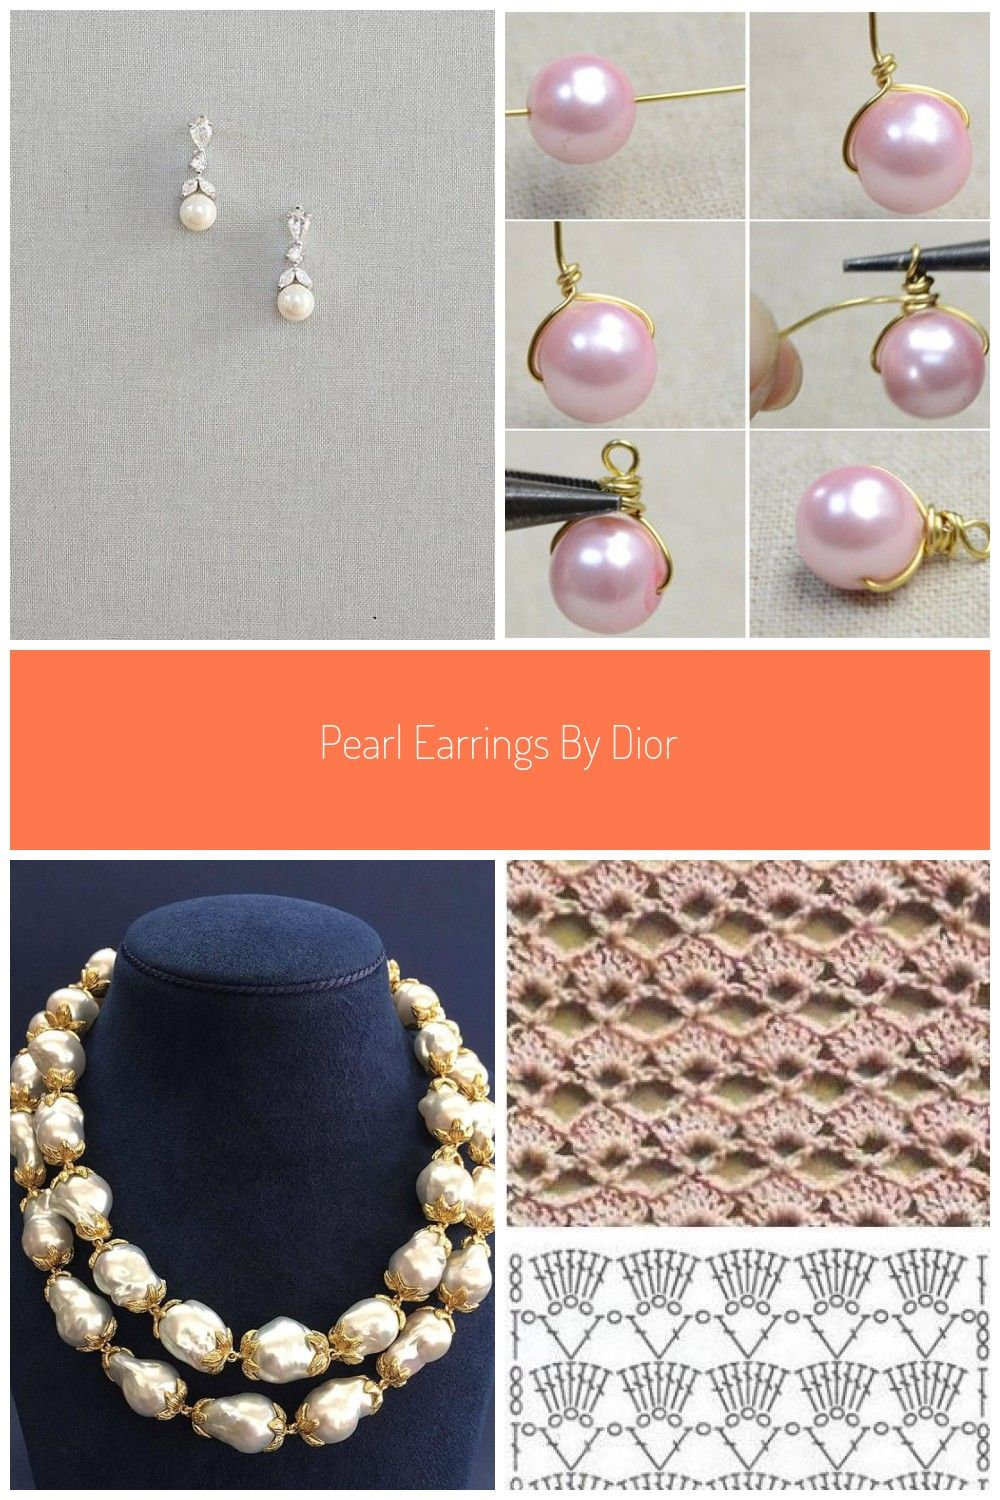 Pearl Earrings By Dior Jewelry Pearl Earrings By Dior